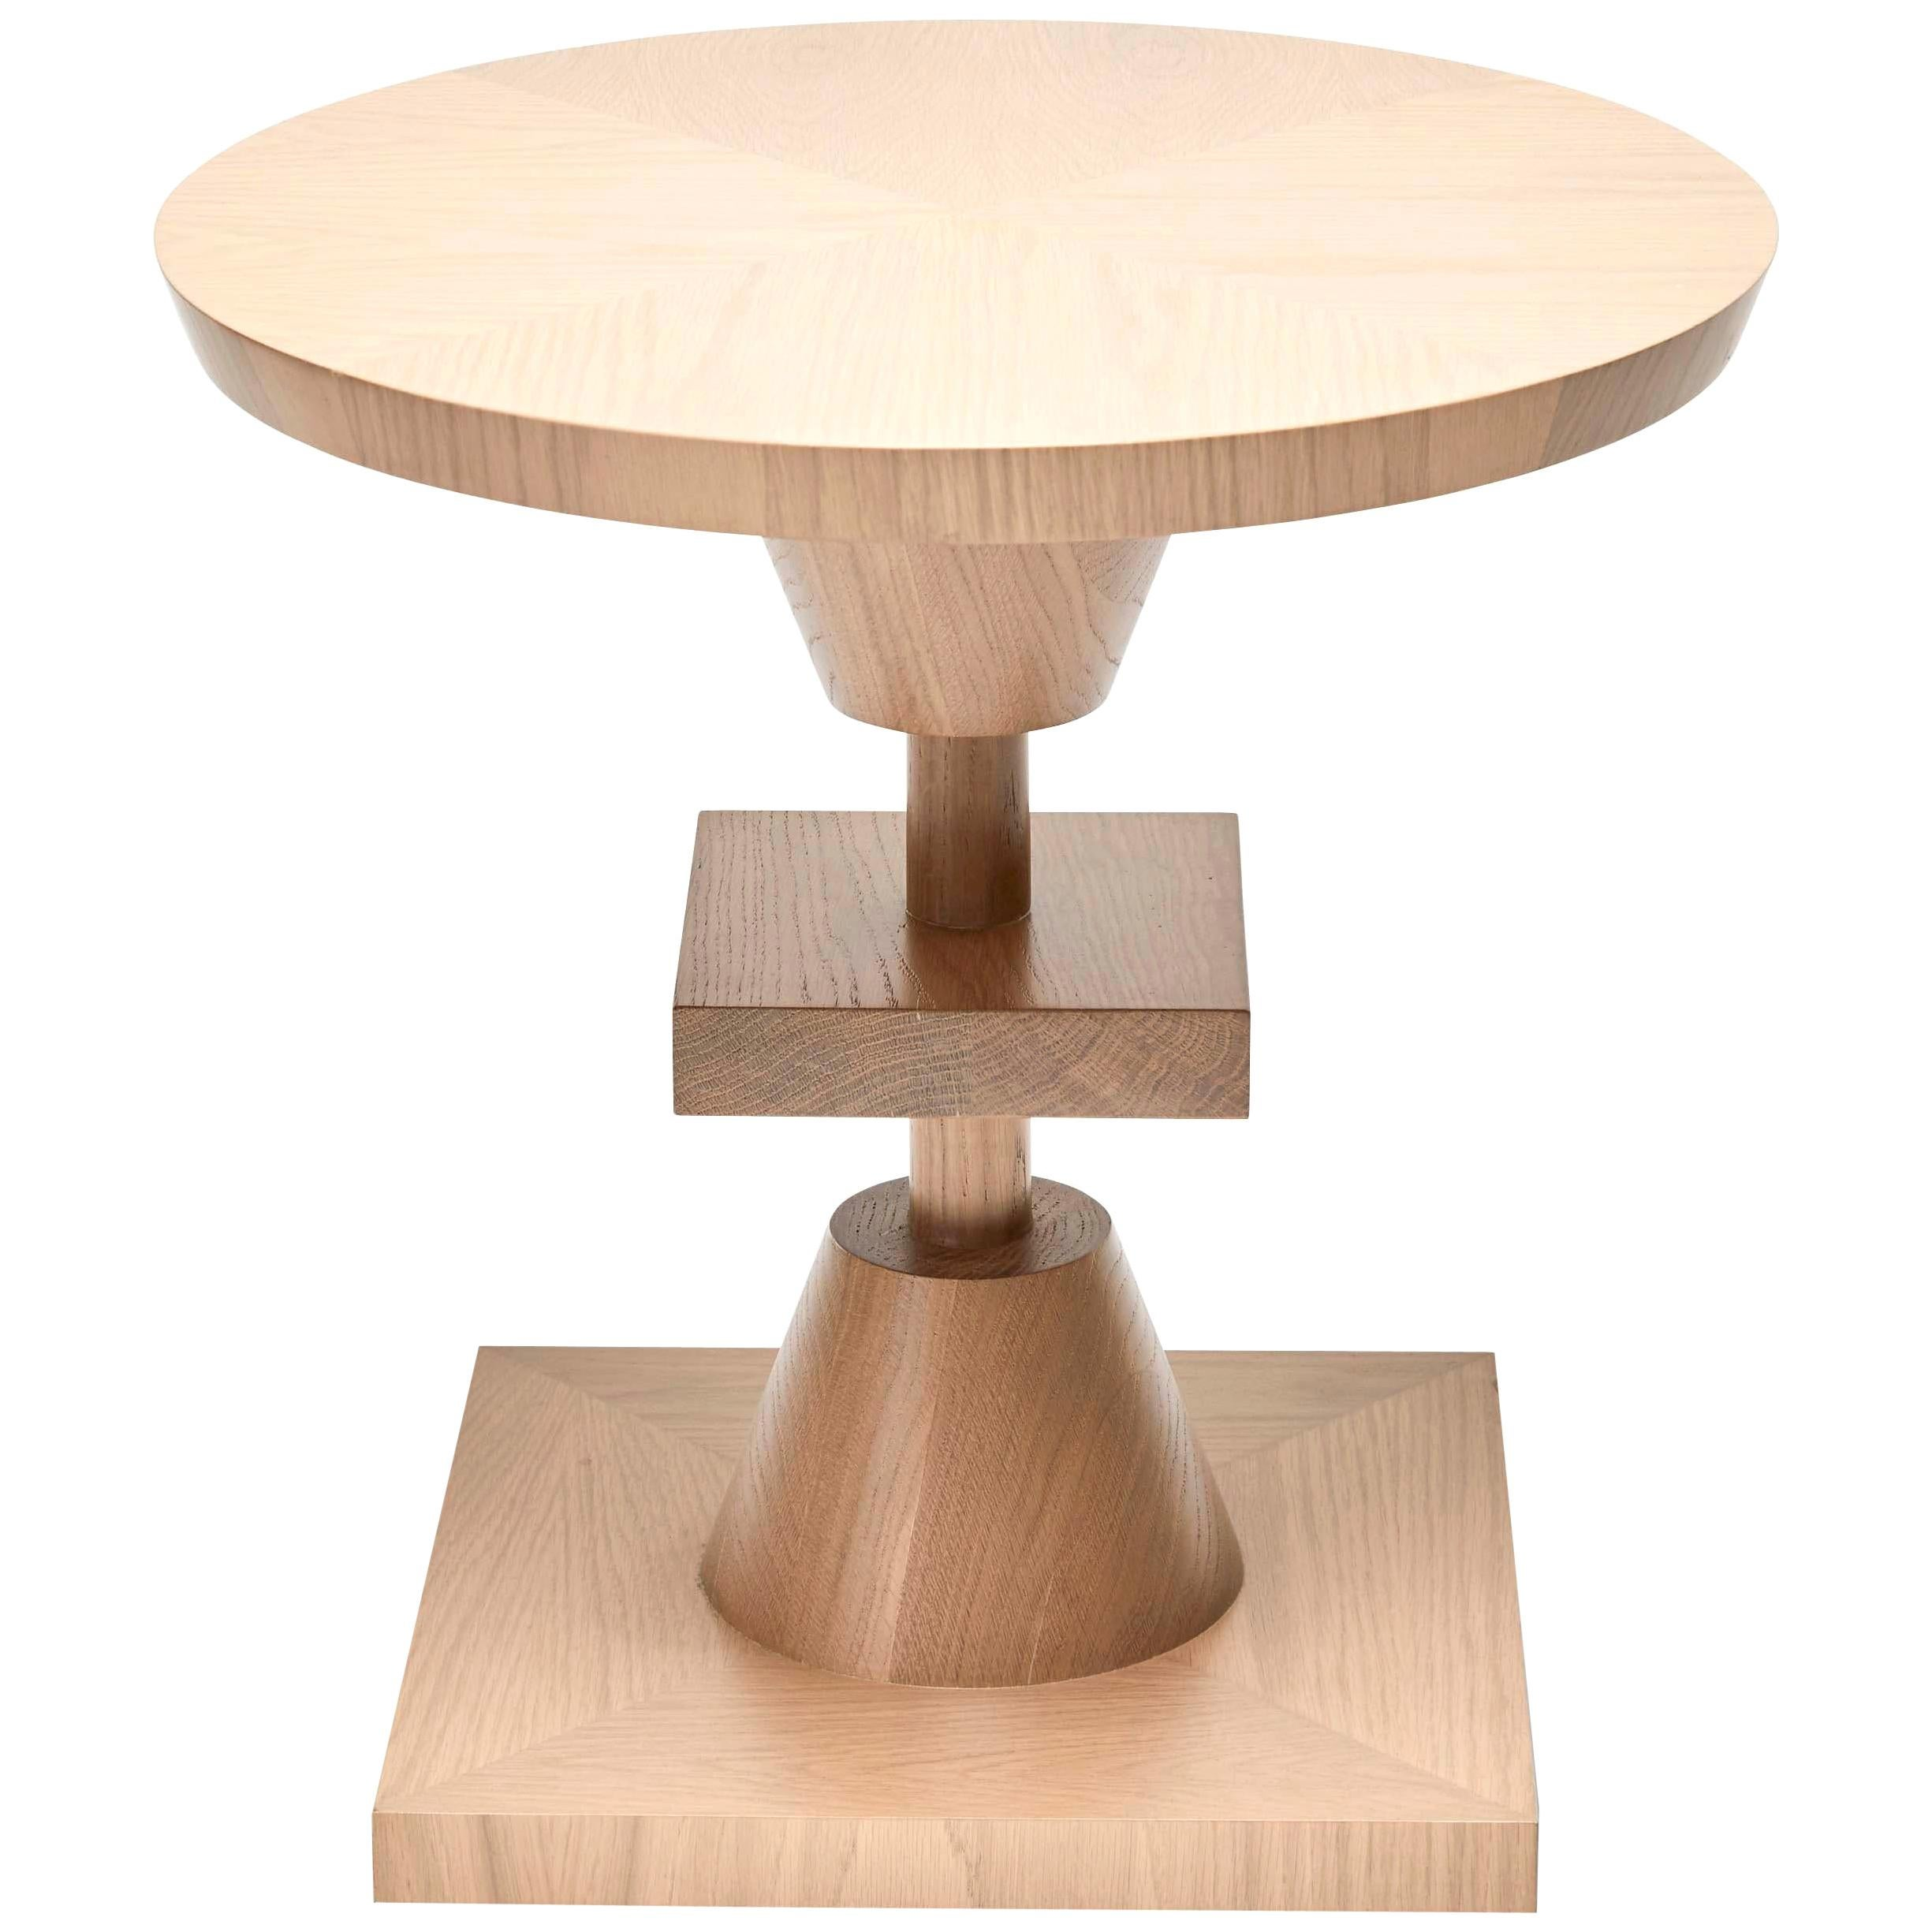 Natural Oak Morro Table by Lawson-Fenning